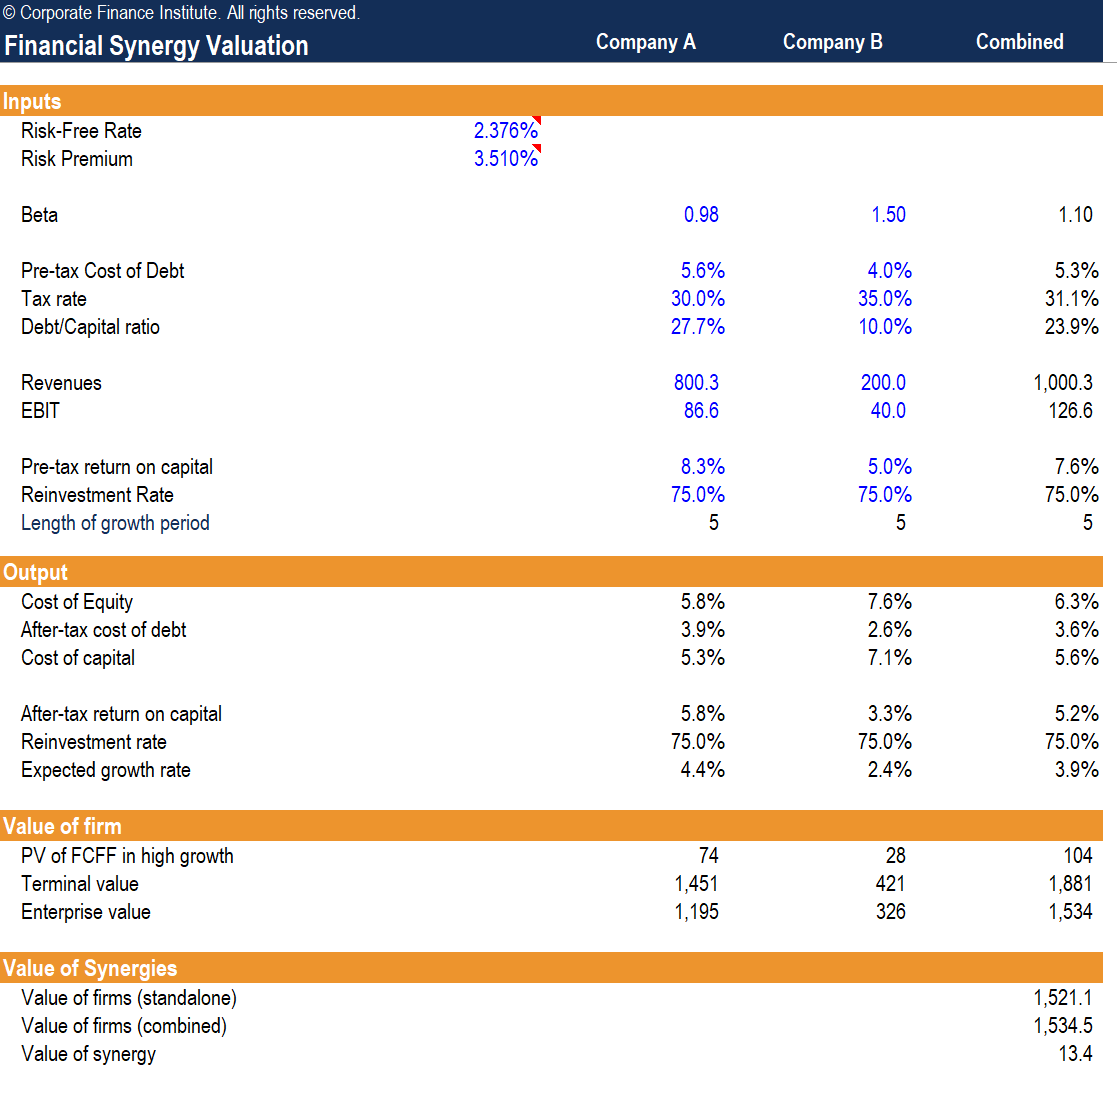 Financial Synergy Valuation Template Screenshot